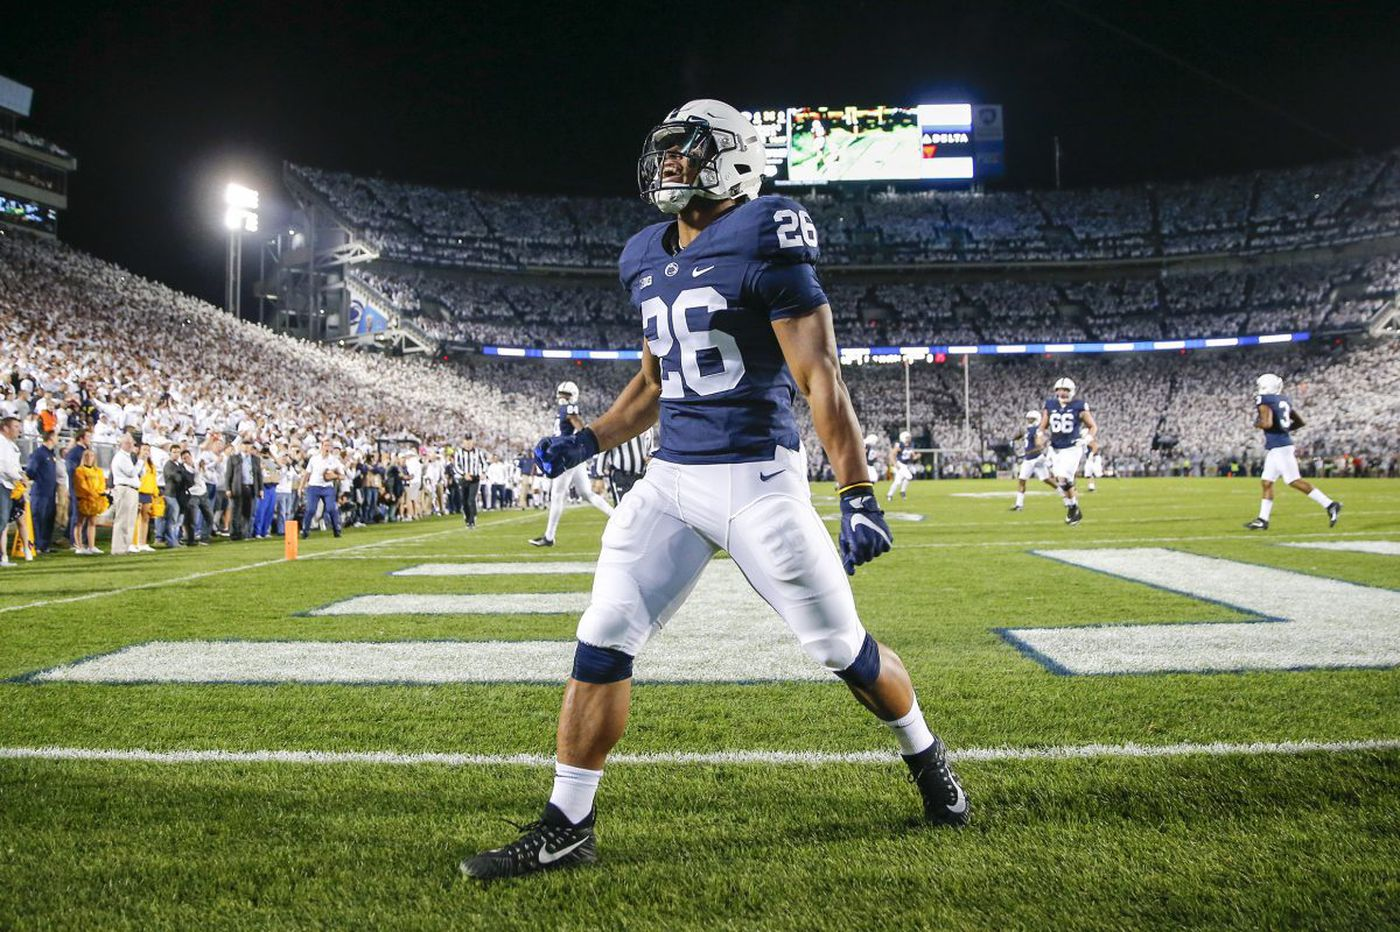 Last home game for Penn State seniors, and probably Saquon Barkley, too